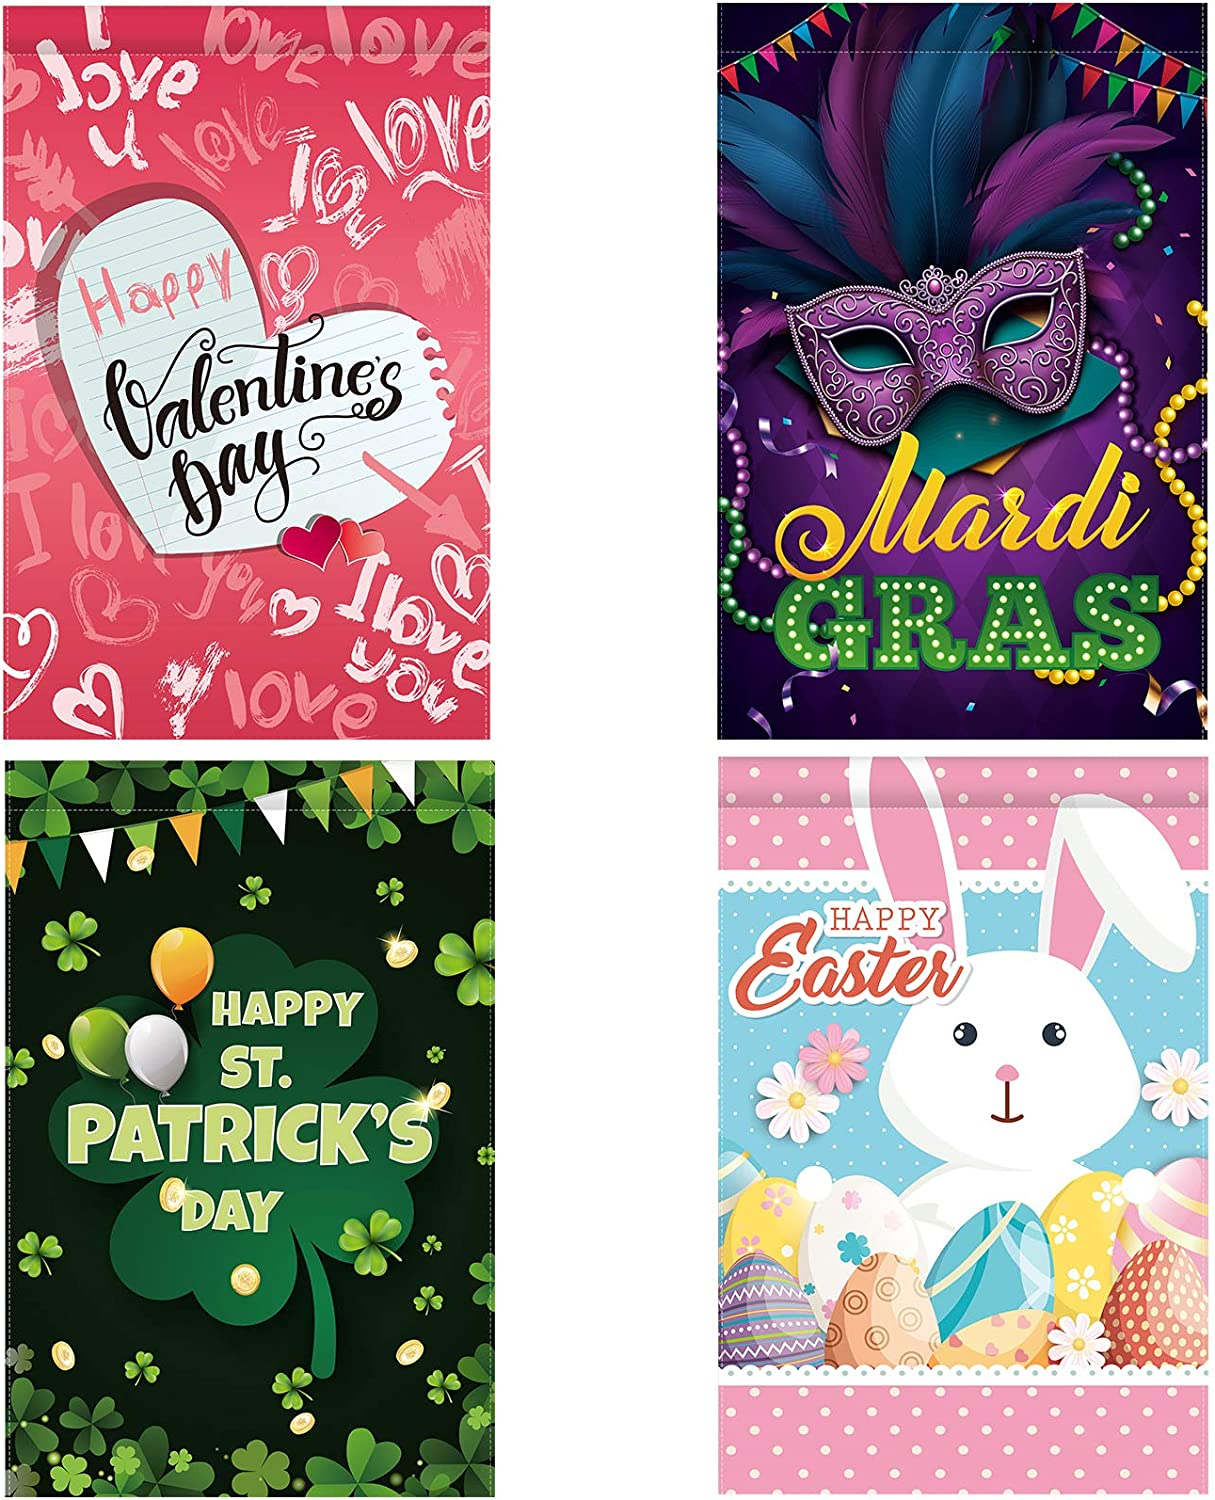 4 Pieces Seasonal Garden Flags Set for Mardi Gras St. Patrick's Easter Valentine's Day Holidays Yard Flags Double Sided Print House Flag Outdoor Garden Flags Decoration, 12 x 18 Inches